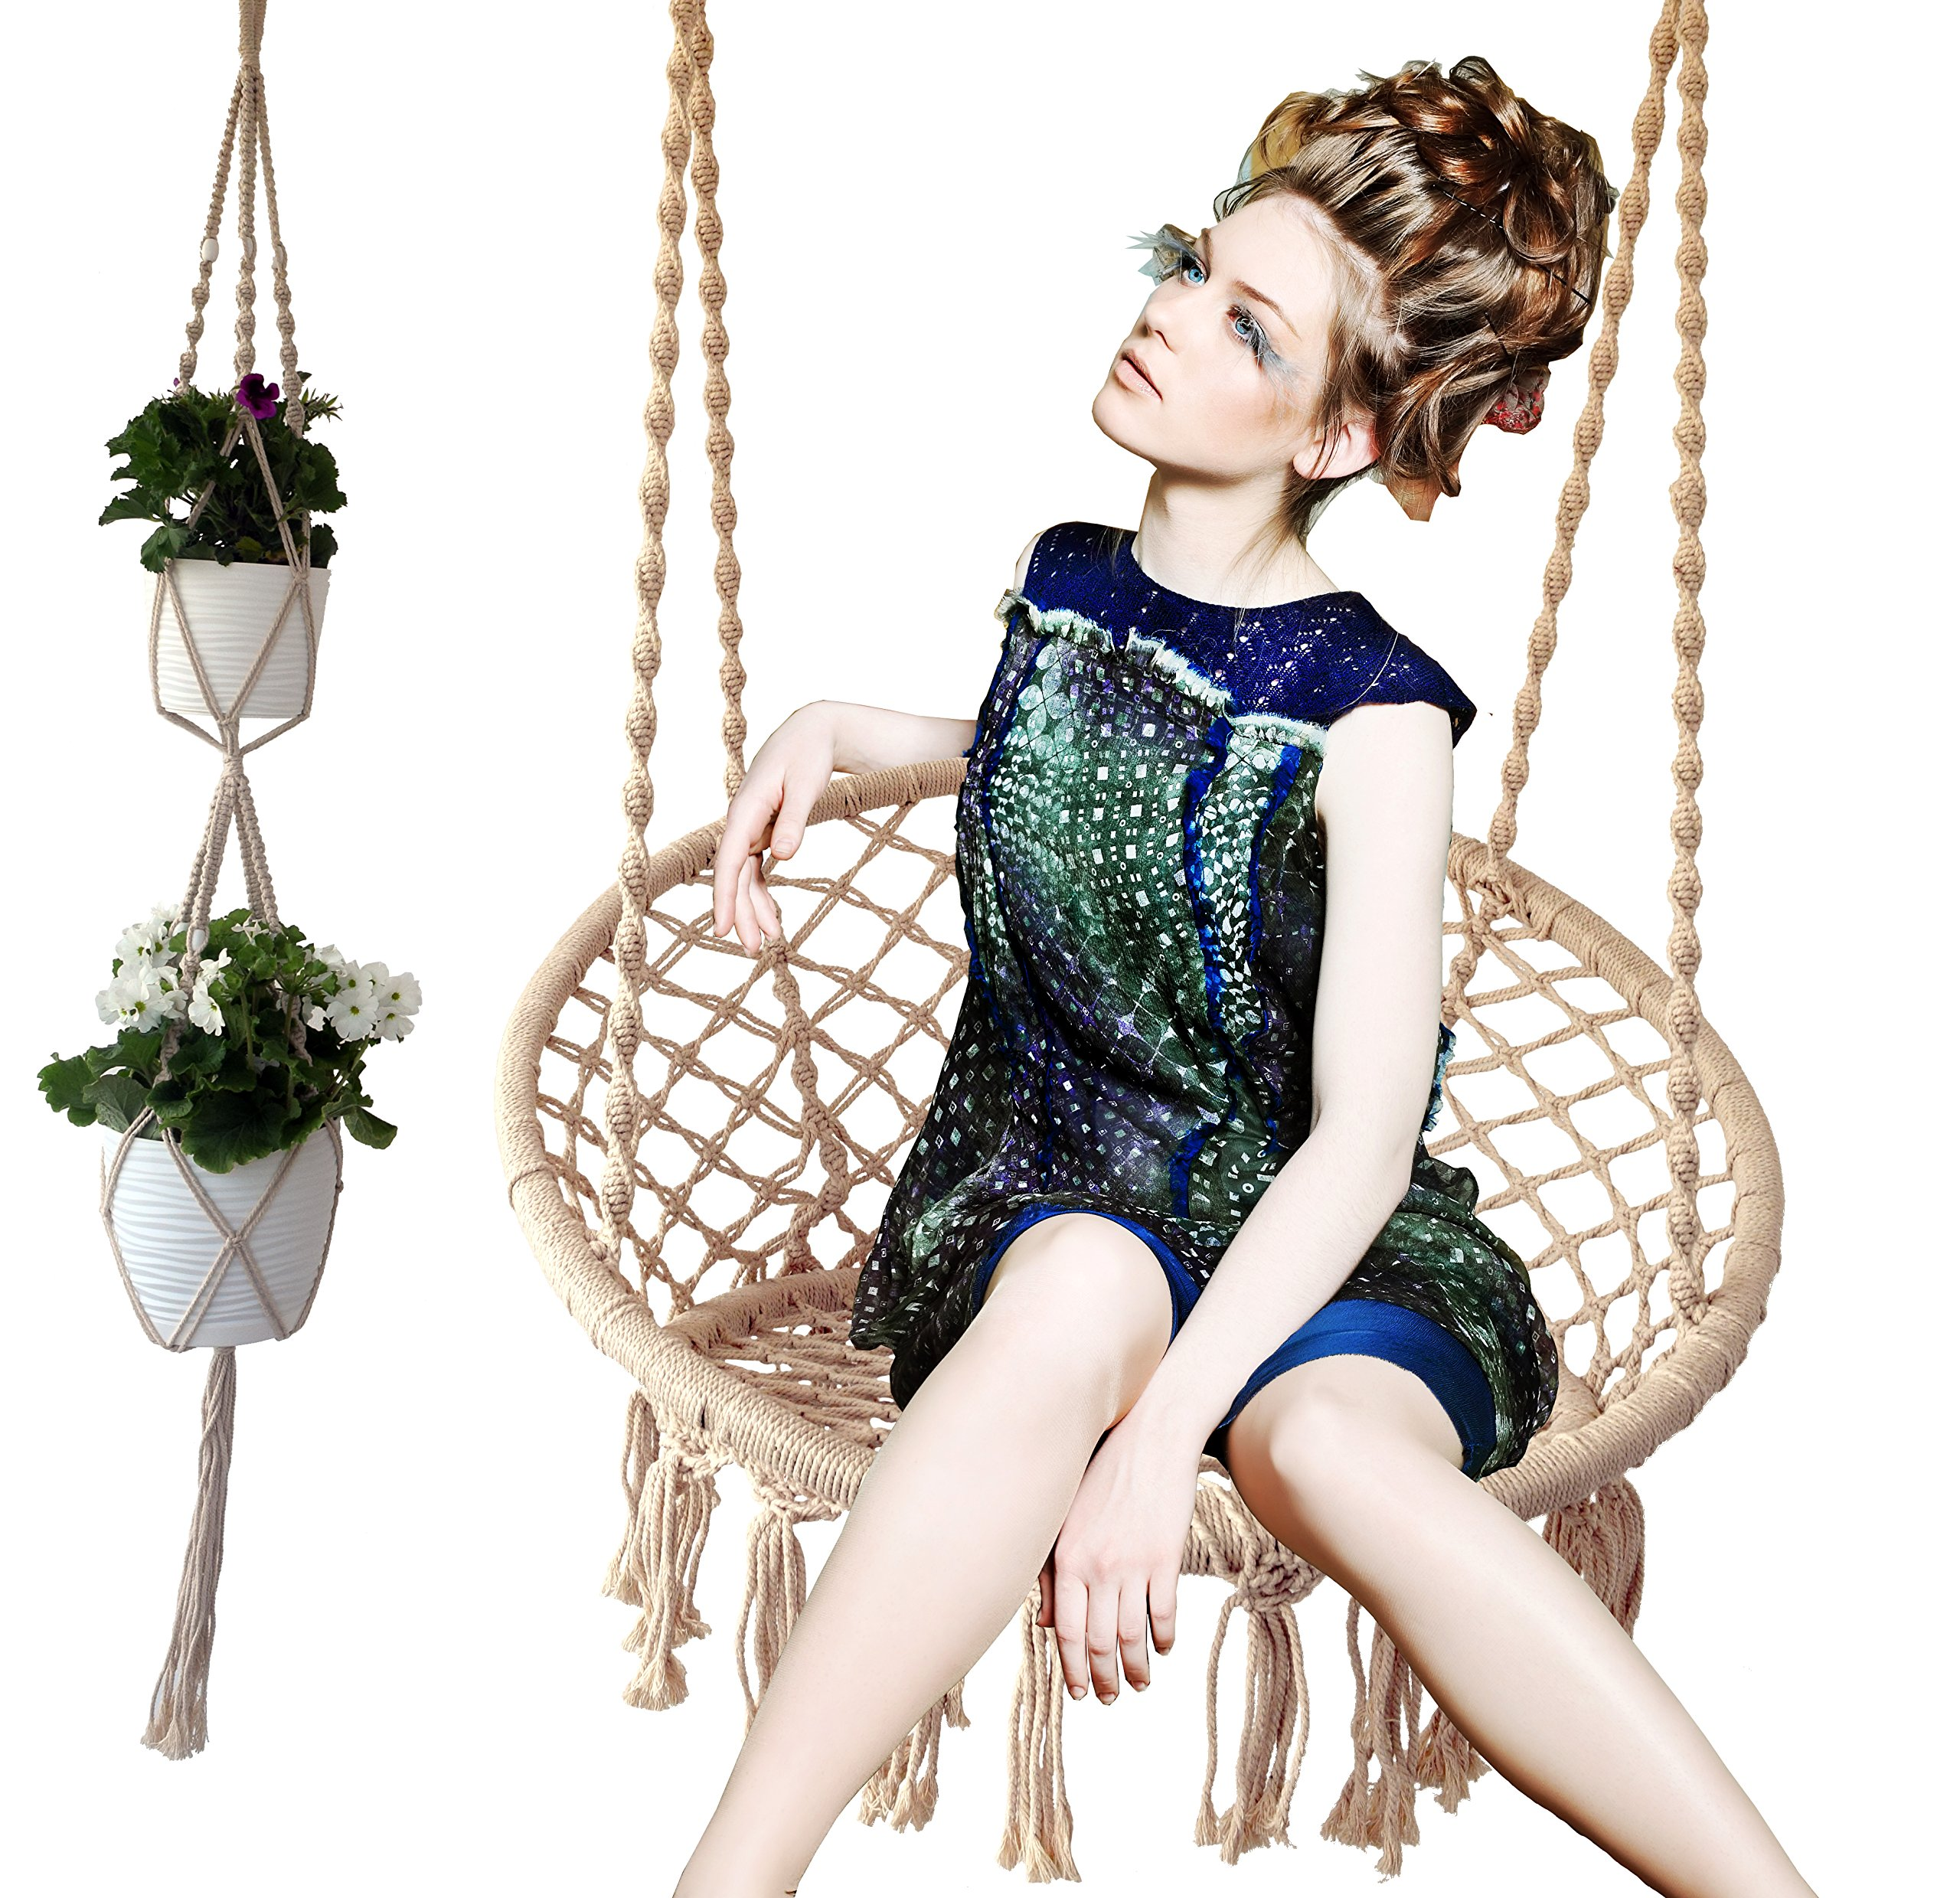 Europe Brands Hammock Macrame Swing Chair + 3 Absolutely For Perfect Decoration, Furniture for Indoor/Outdoor, Home, Patio, Deck, Yard, Garden, Reading, Leisure, Lounging by